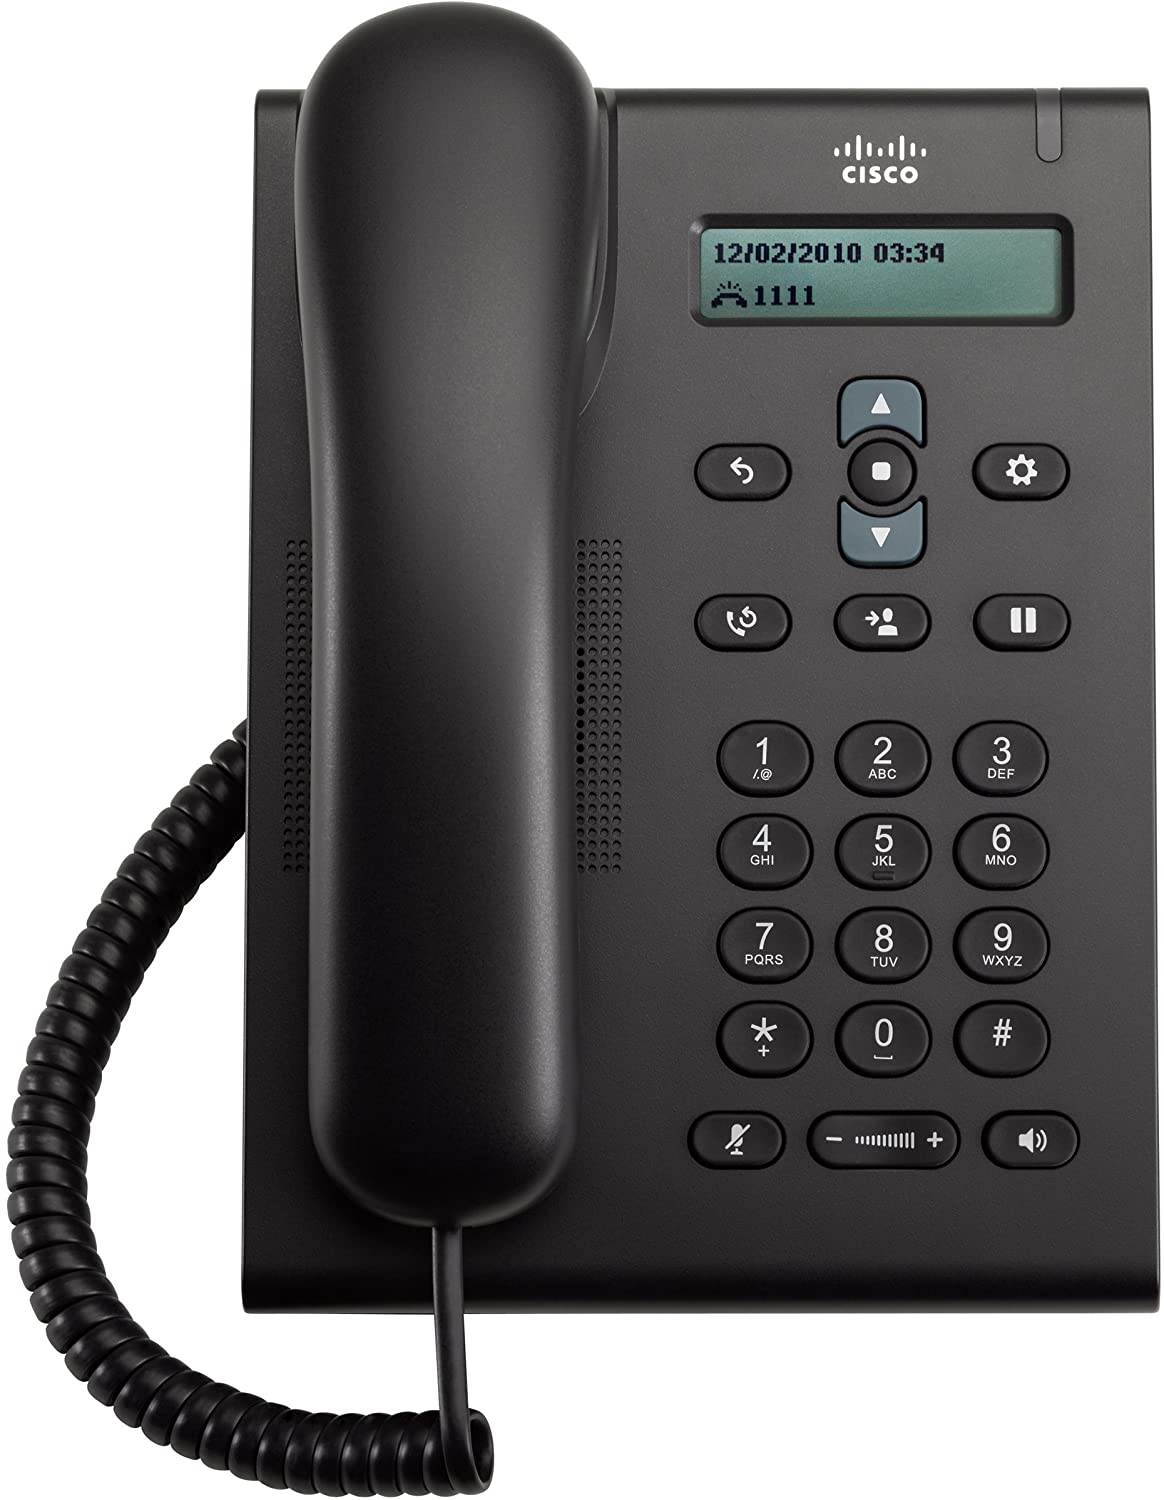 Cisco Unified Sip Phone CP-3905= Unified Sip Phone 3905 (Power Supply Not Included), Black